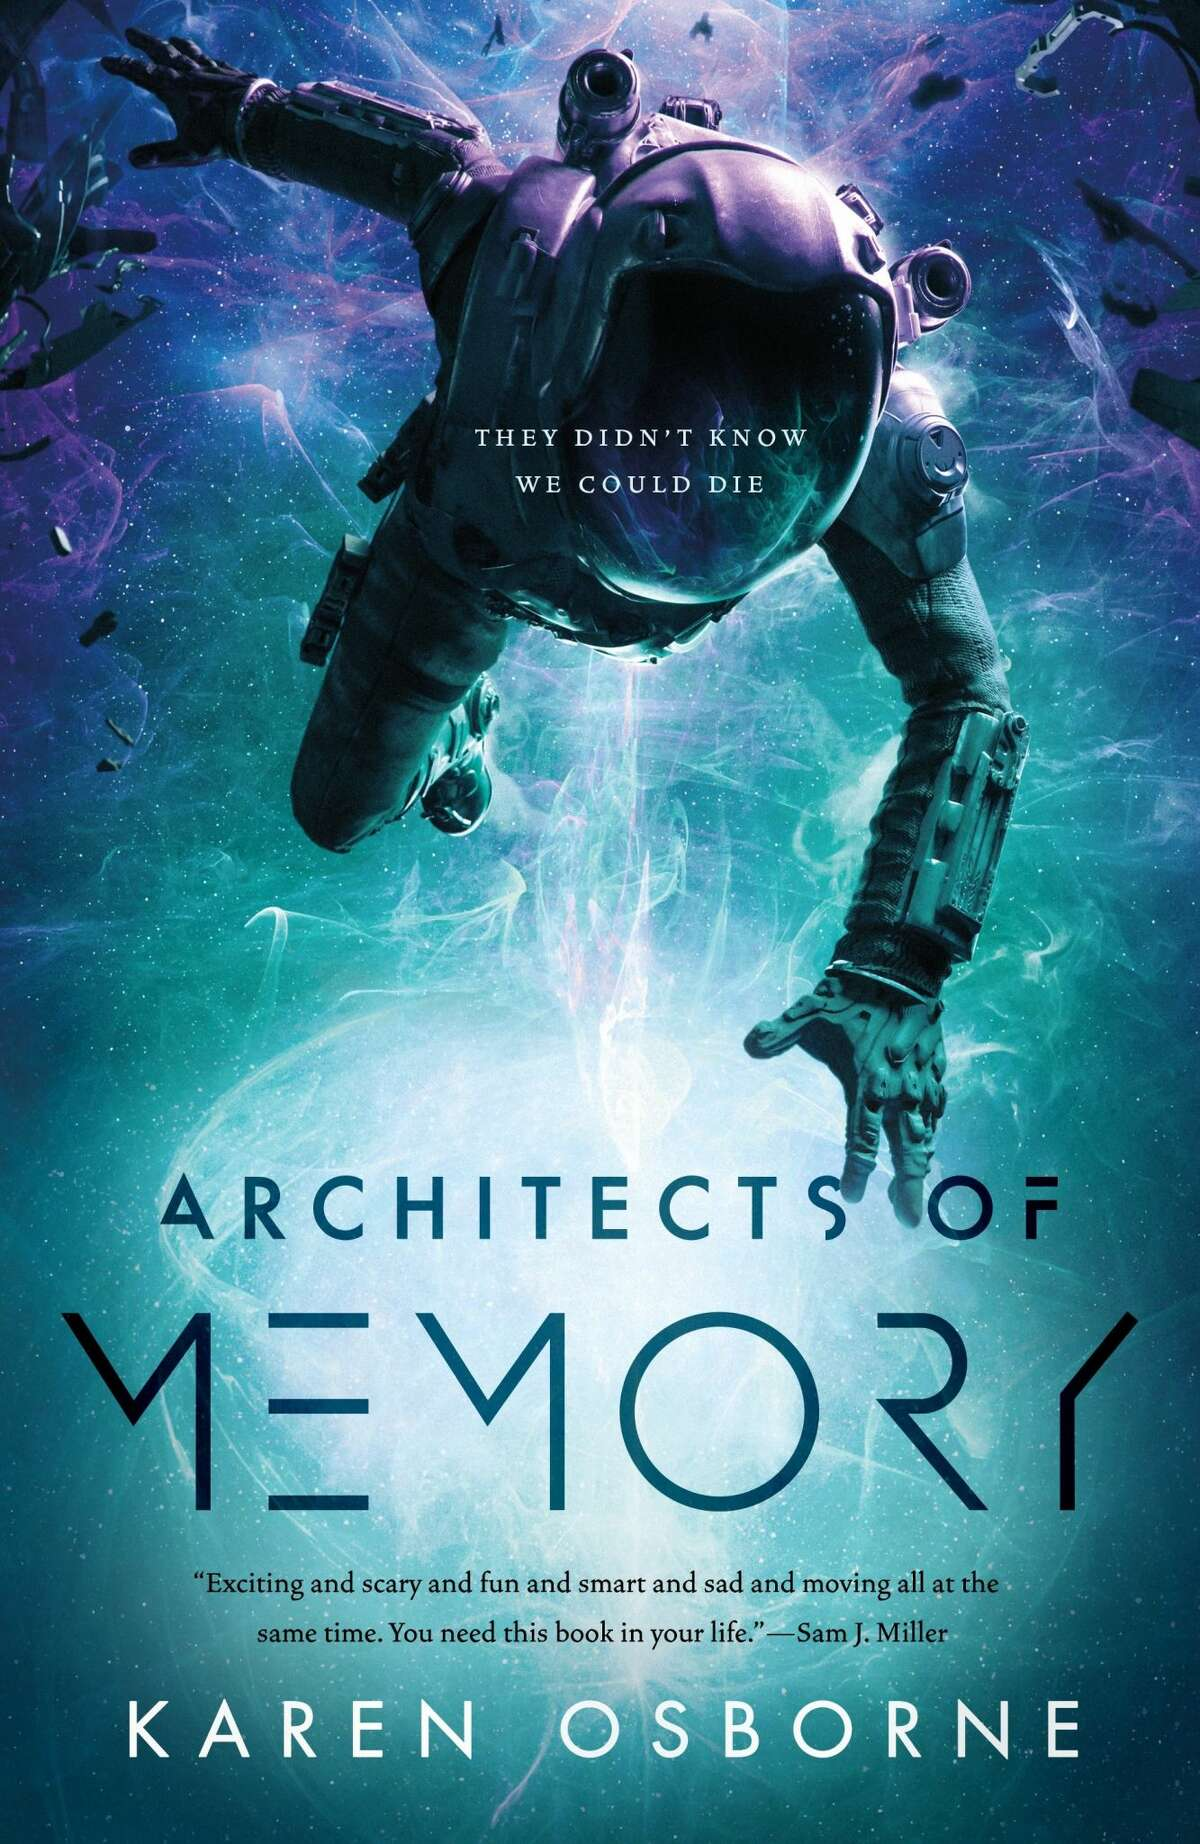 """Karen Osborne, a Niskayuna native, wrote """"Architects of Memory."""" The sequel, """"Engines of Oblivion,"""" was released this past summer."""